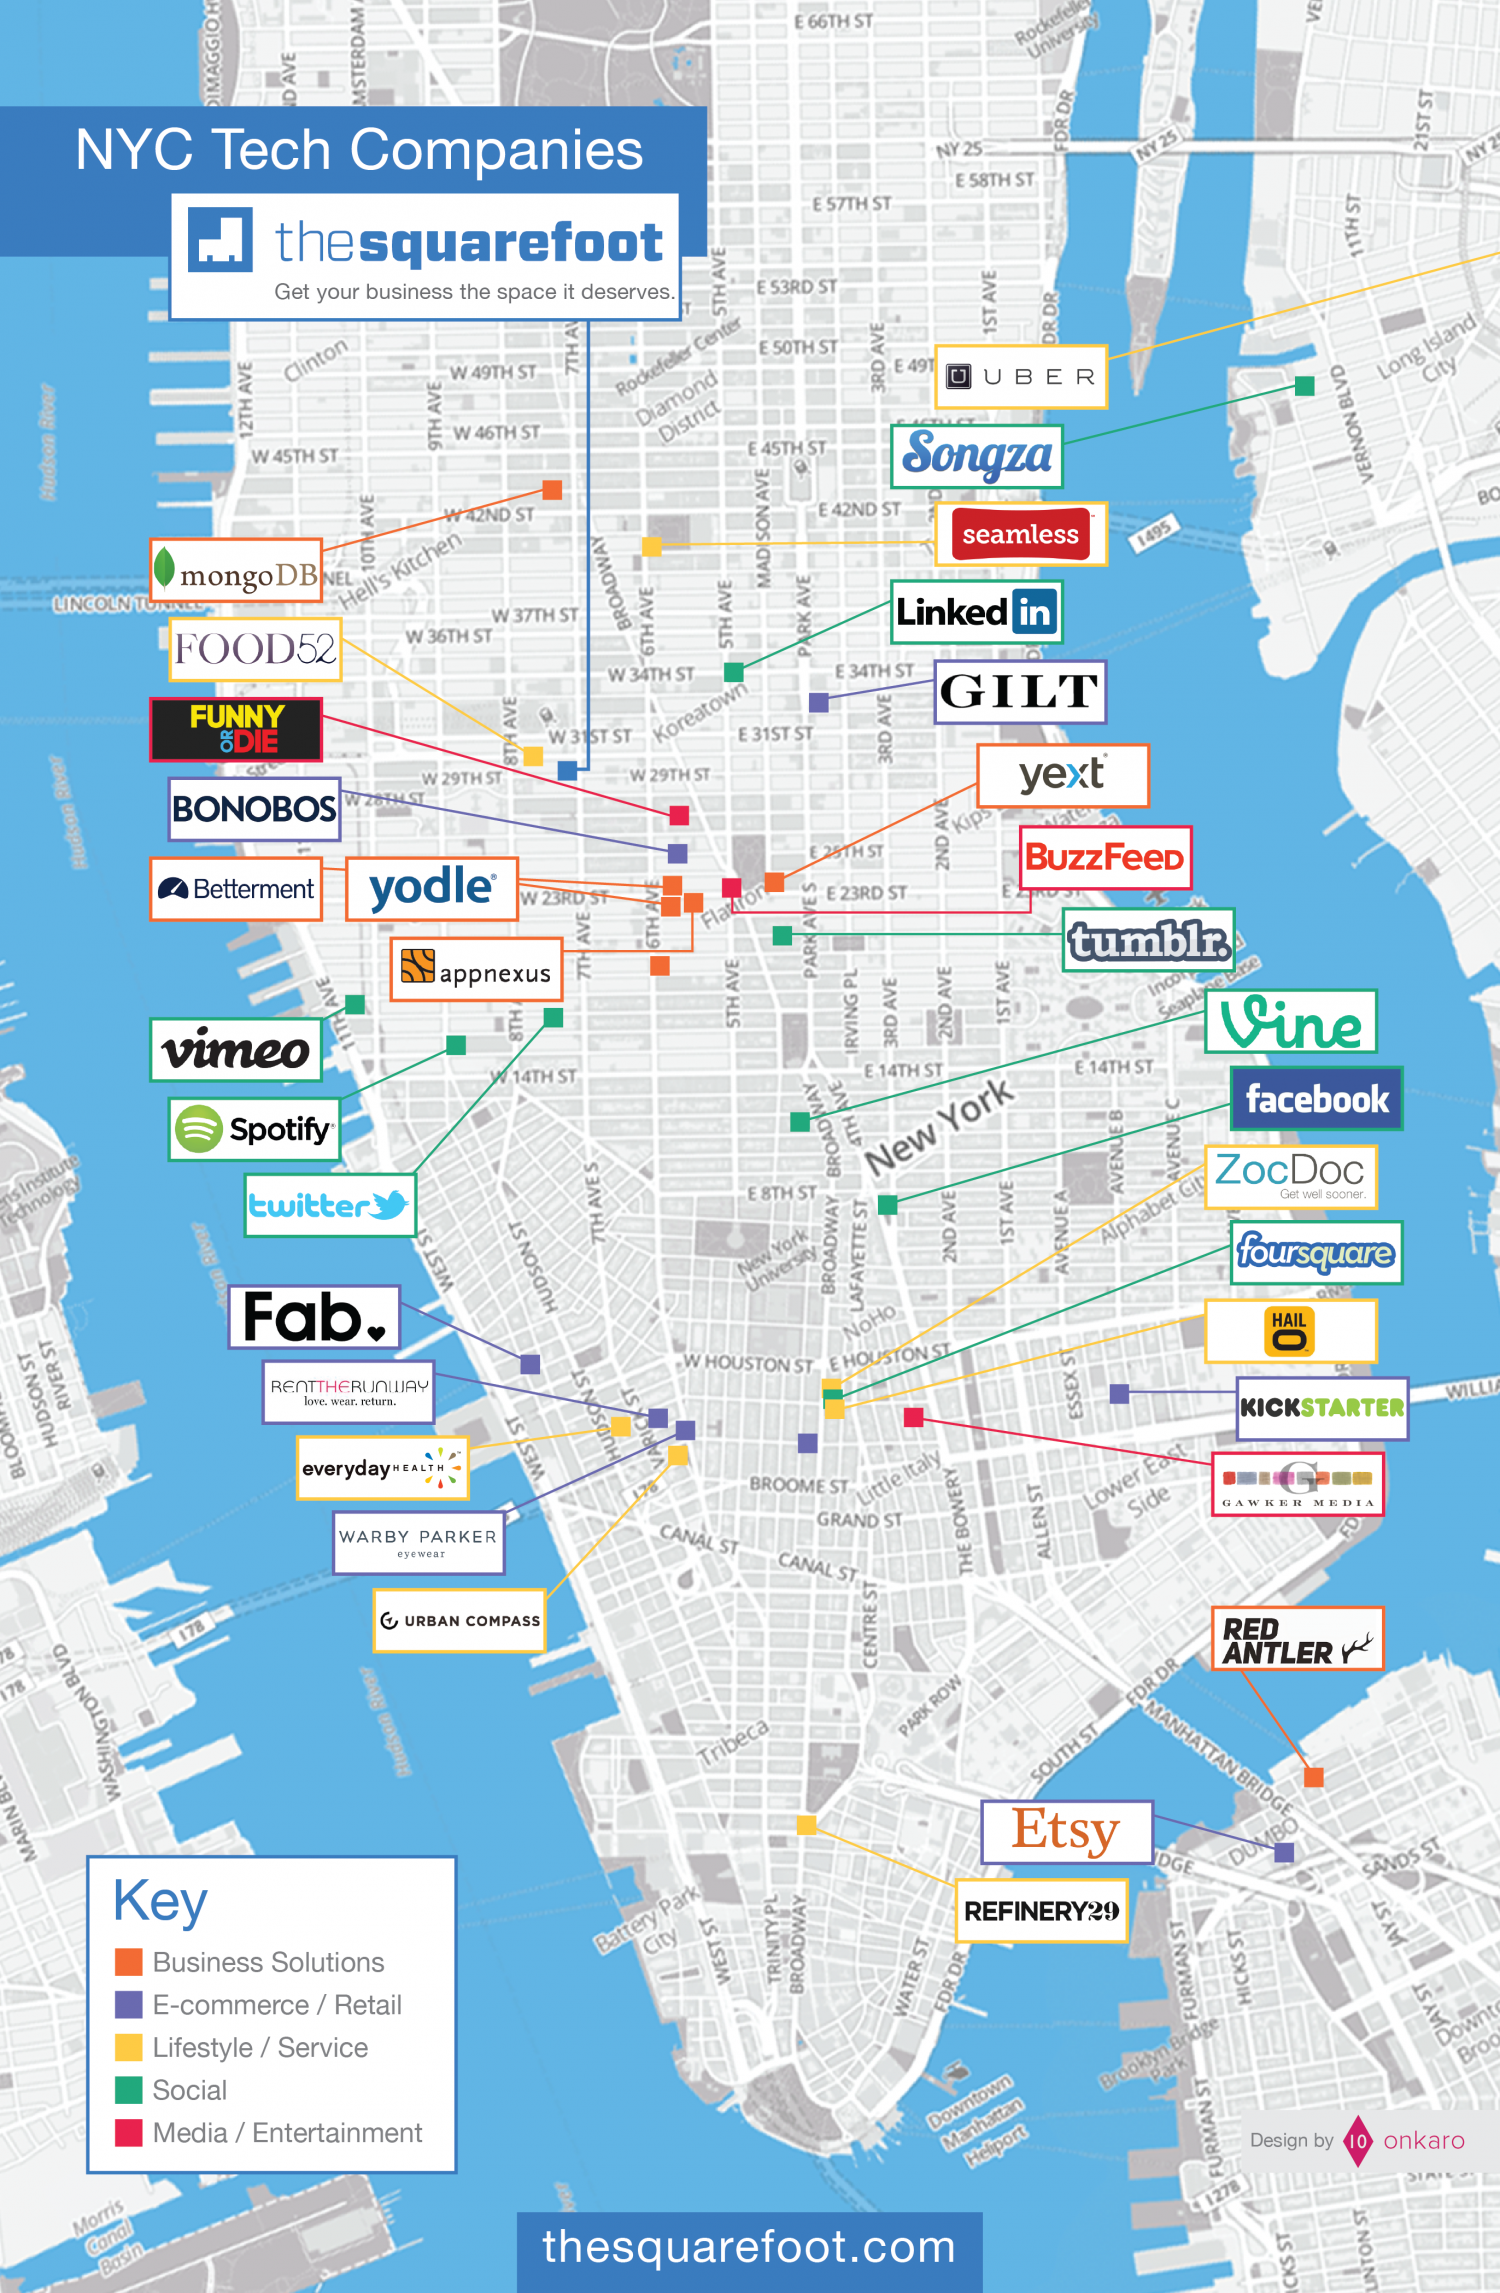 NYC Tech Companies Infographic